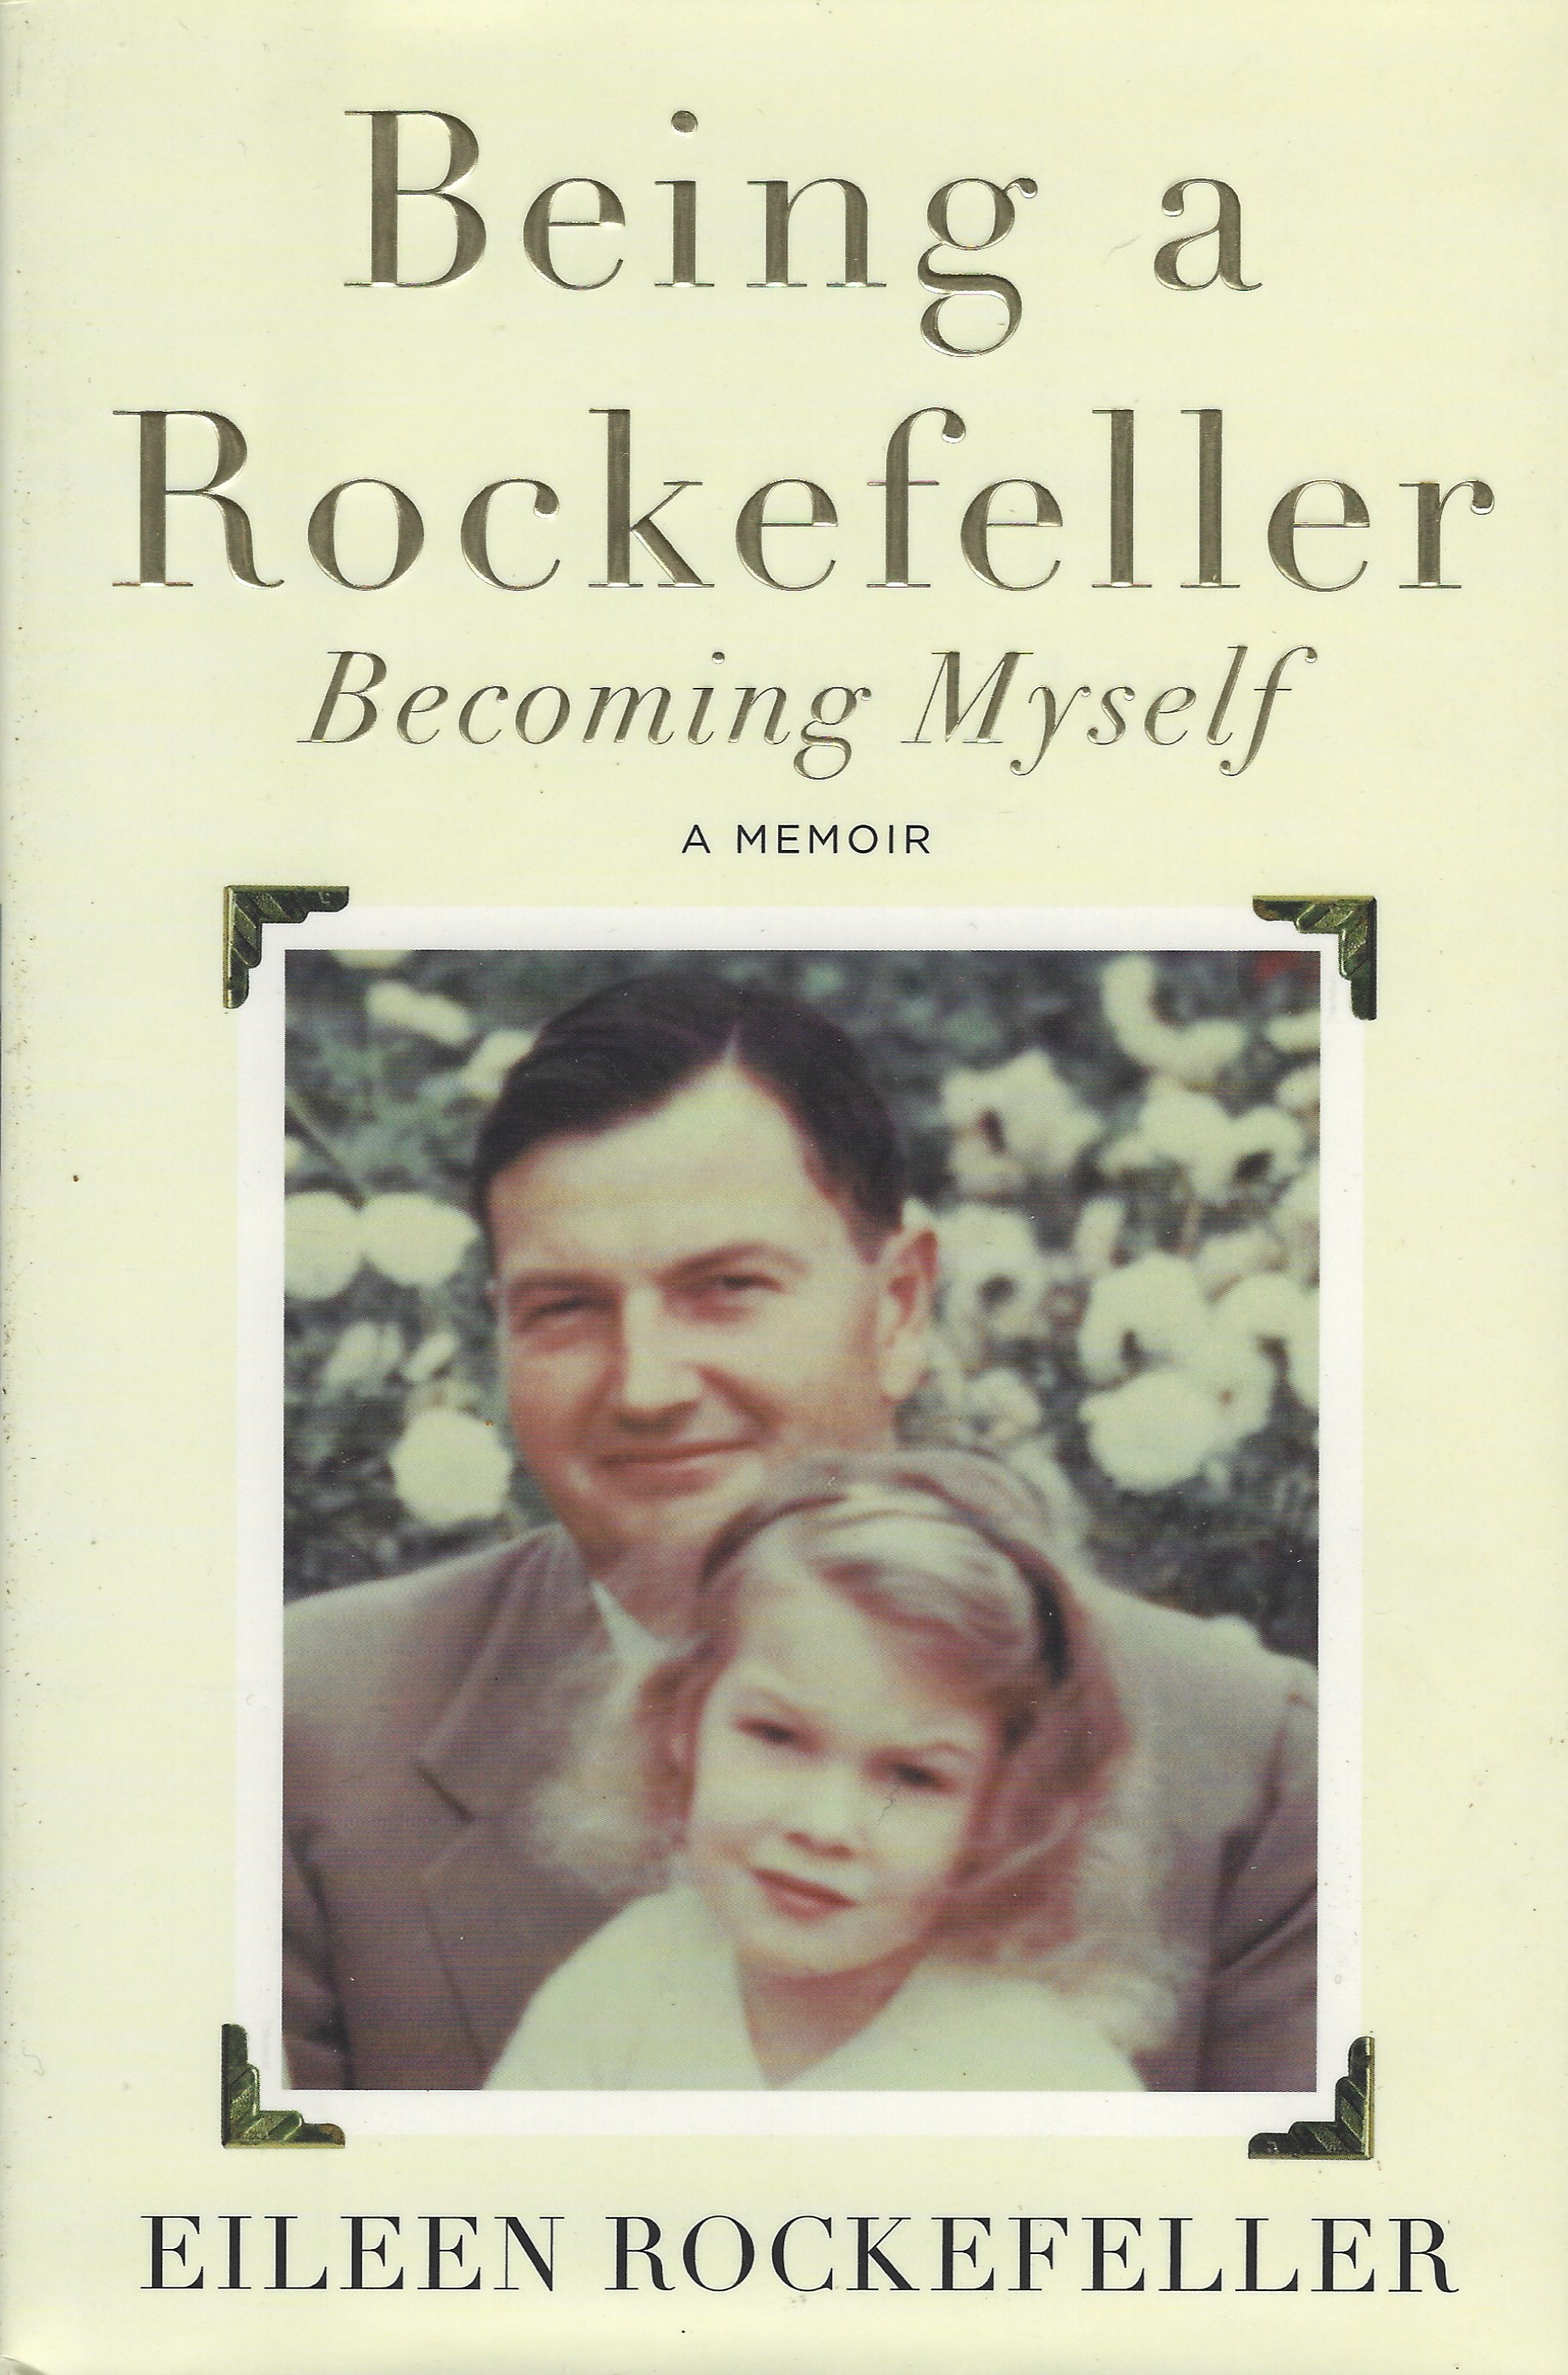 Image for Being a Rockefeller, Becoming Myself: A Memoir